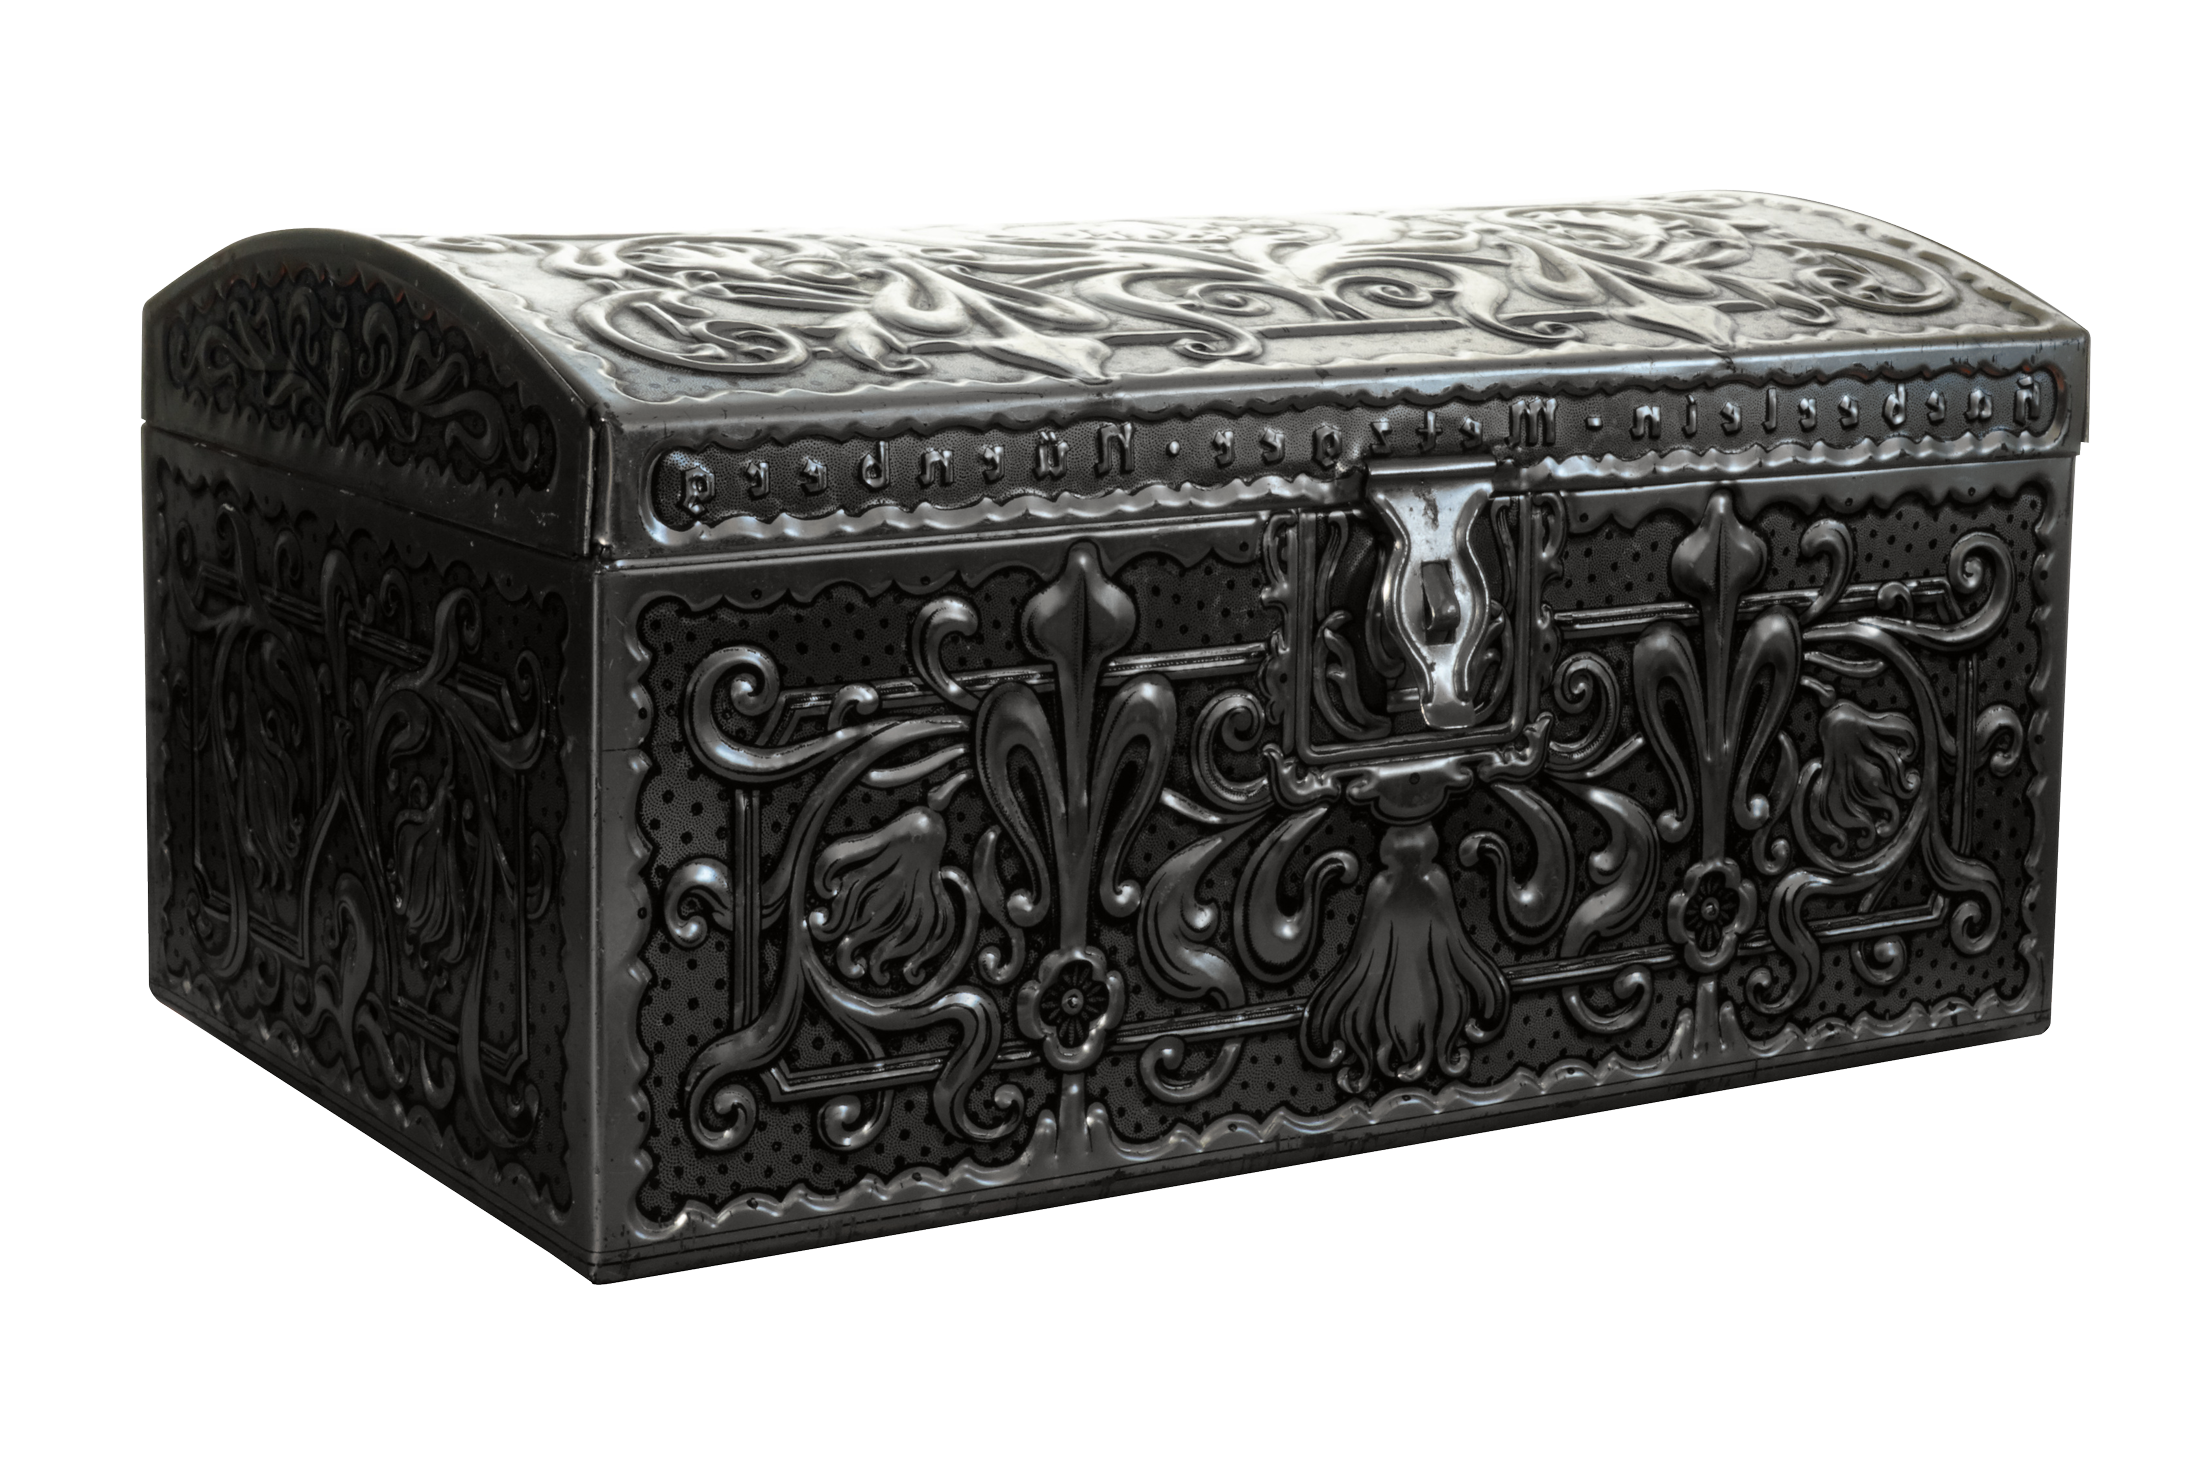 Treasure clipart old chest. Png transparent image pngpix